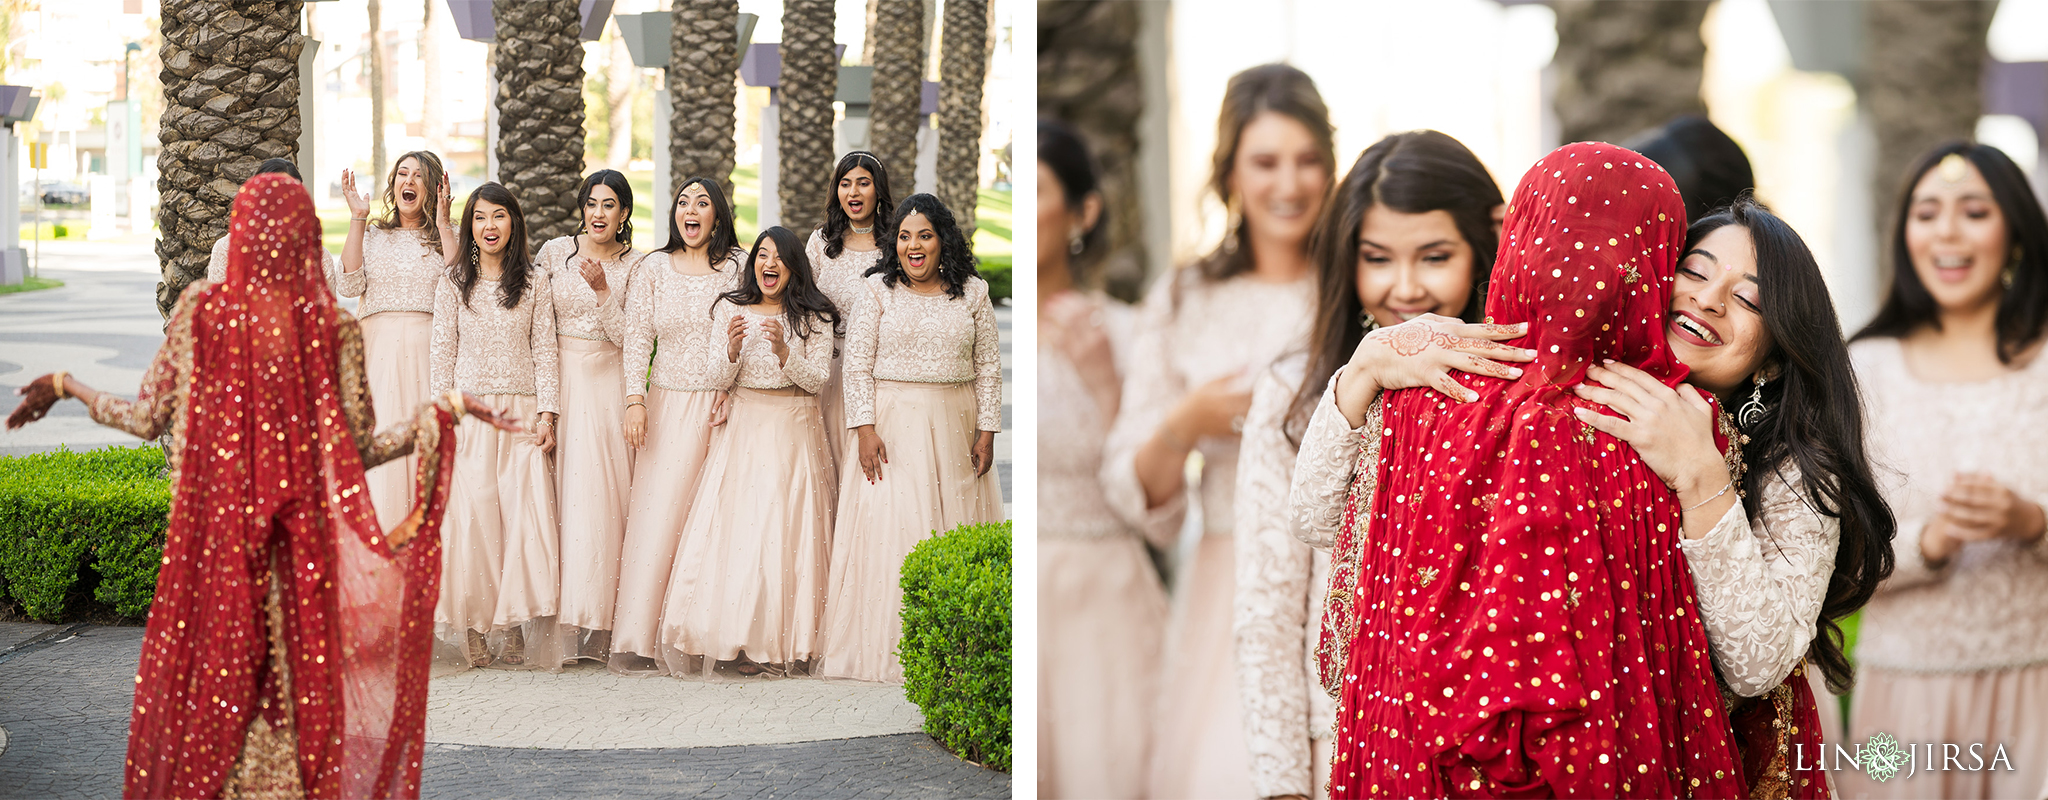 11 Hyatt Regency Garden Grove Pakistani Muslim Wedding Photography